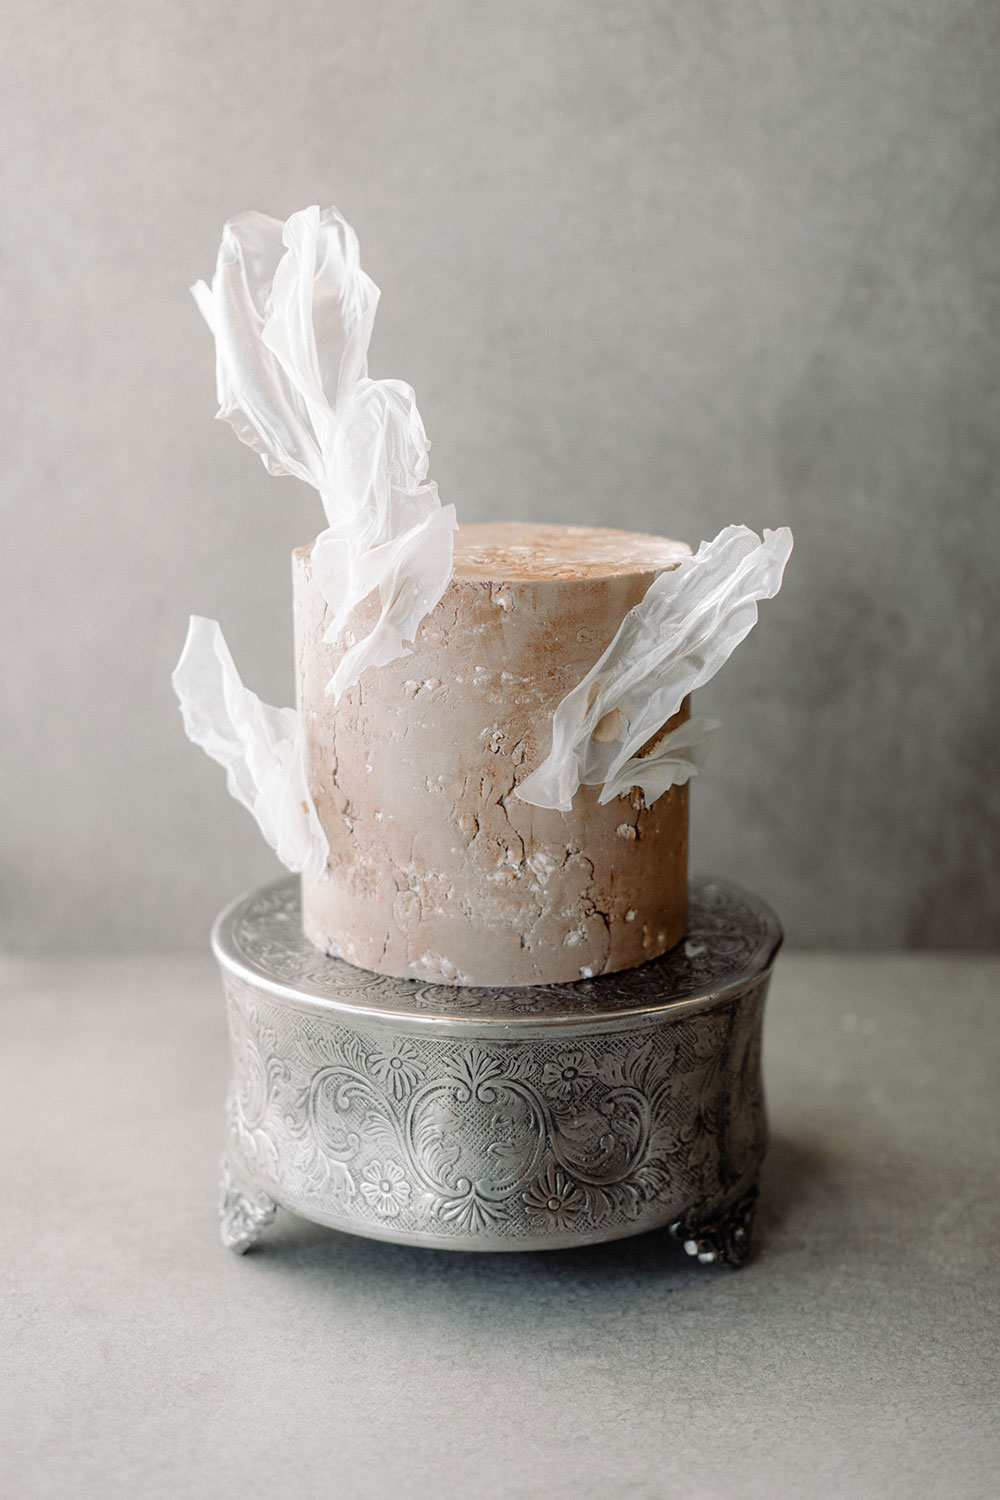 The wedding cake was done with texture, in rust shades with a white sugar pieces floating over the cake